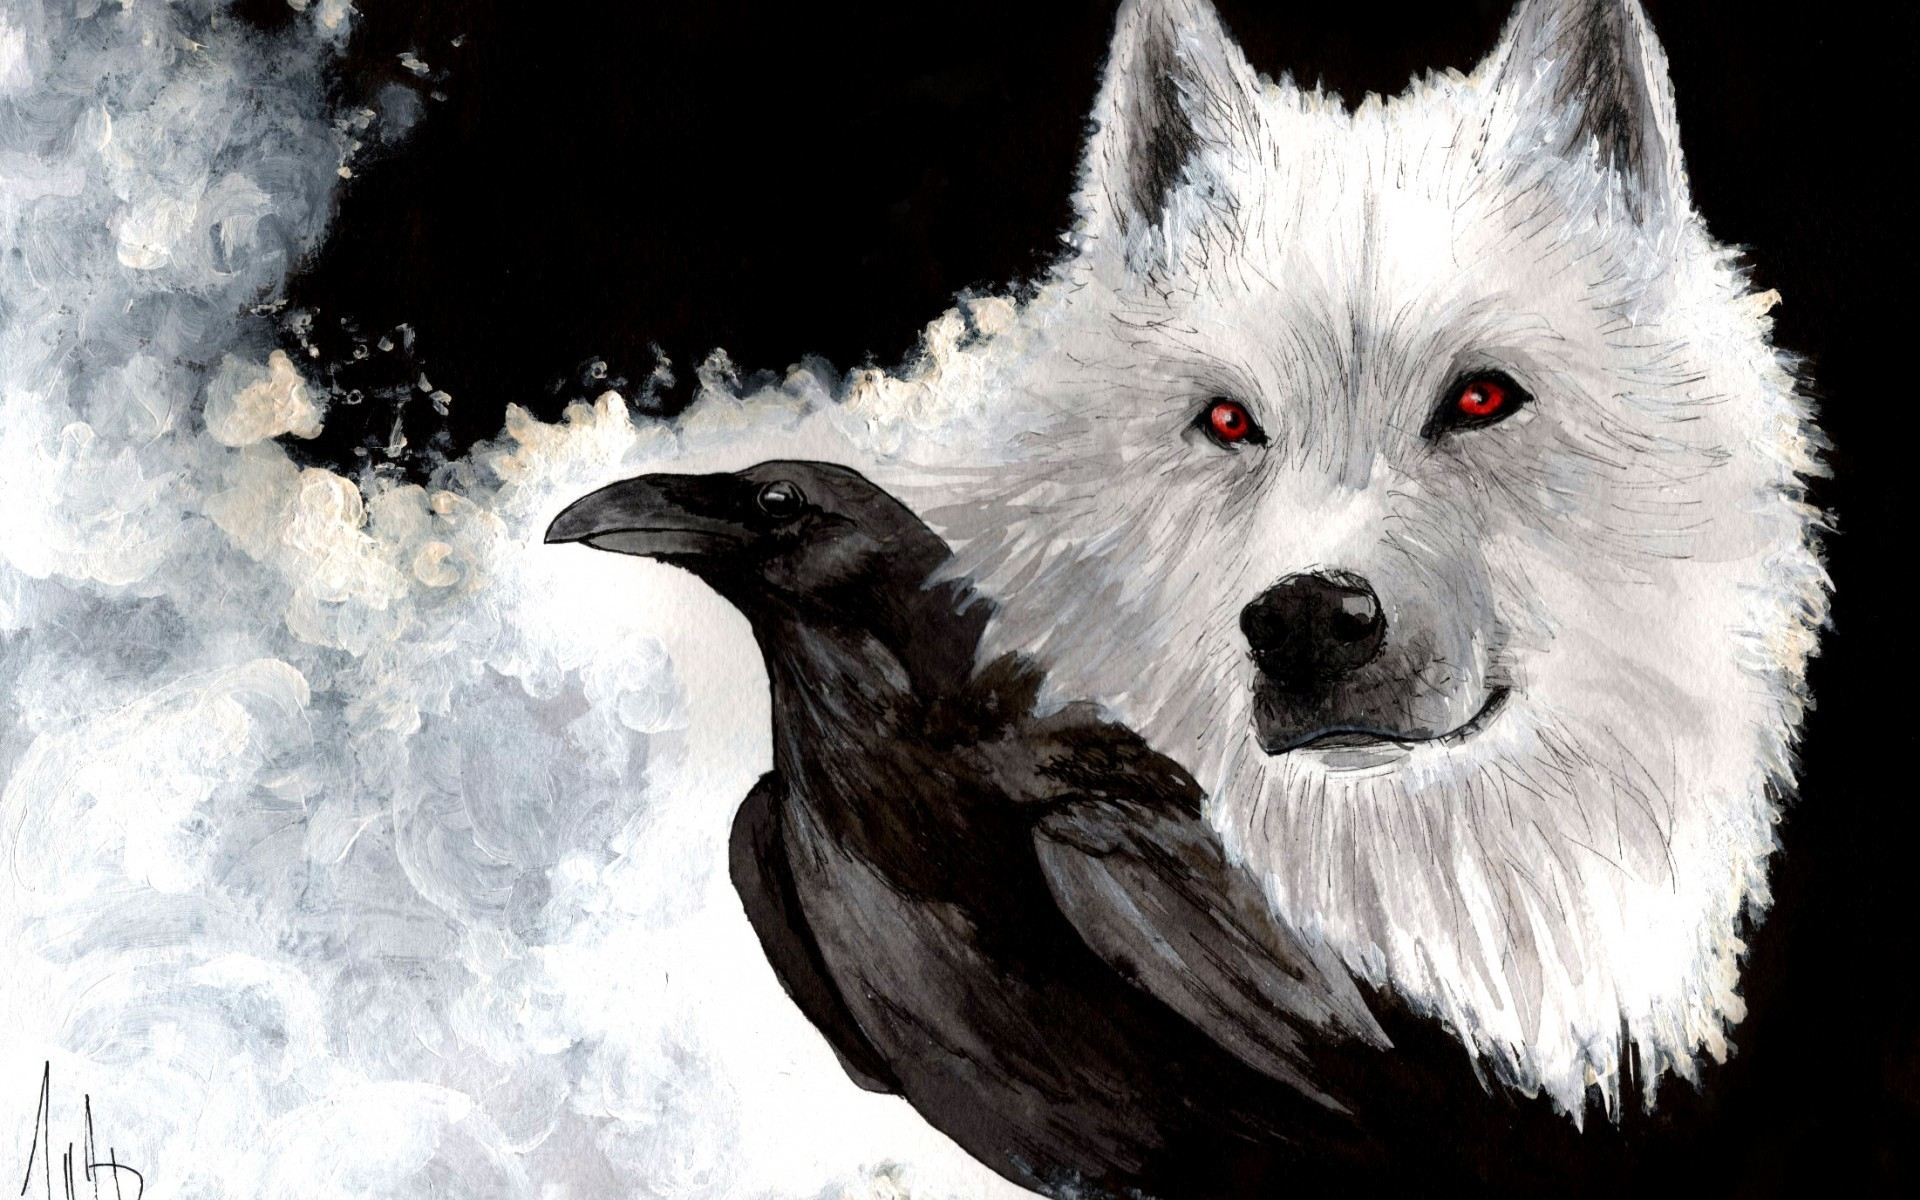 Drawn raven snow Raven Wolf Raven and wallpapers